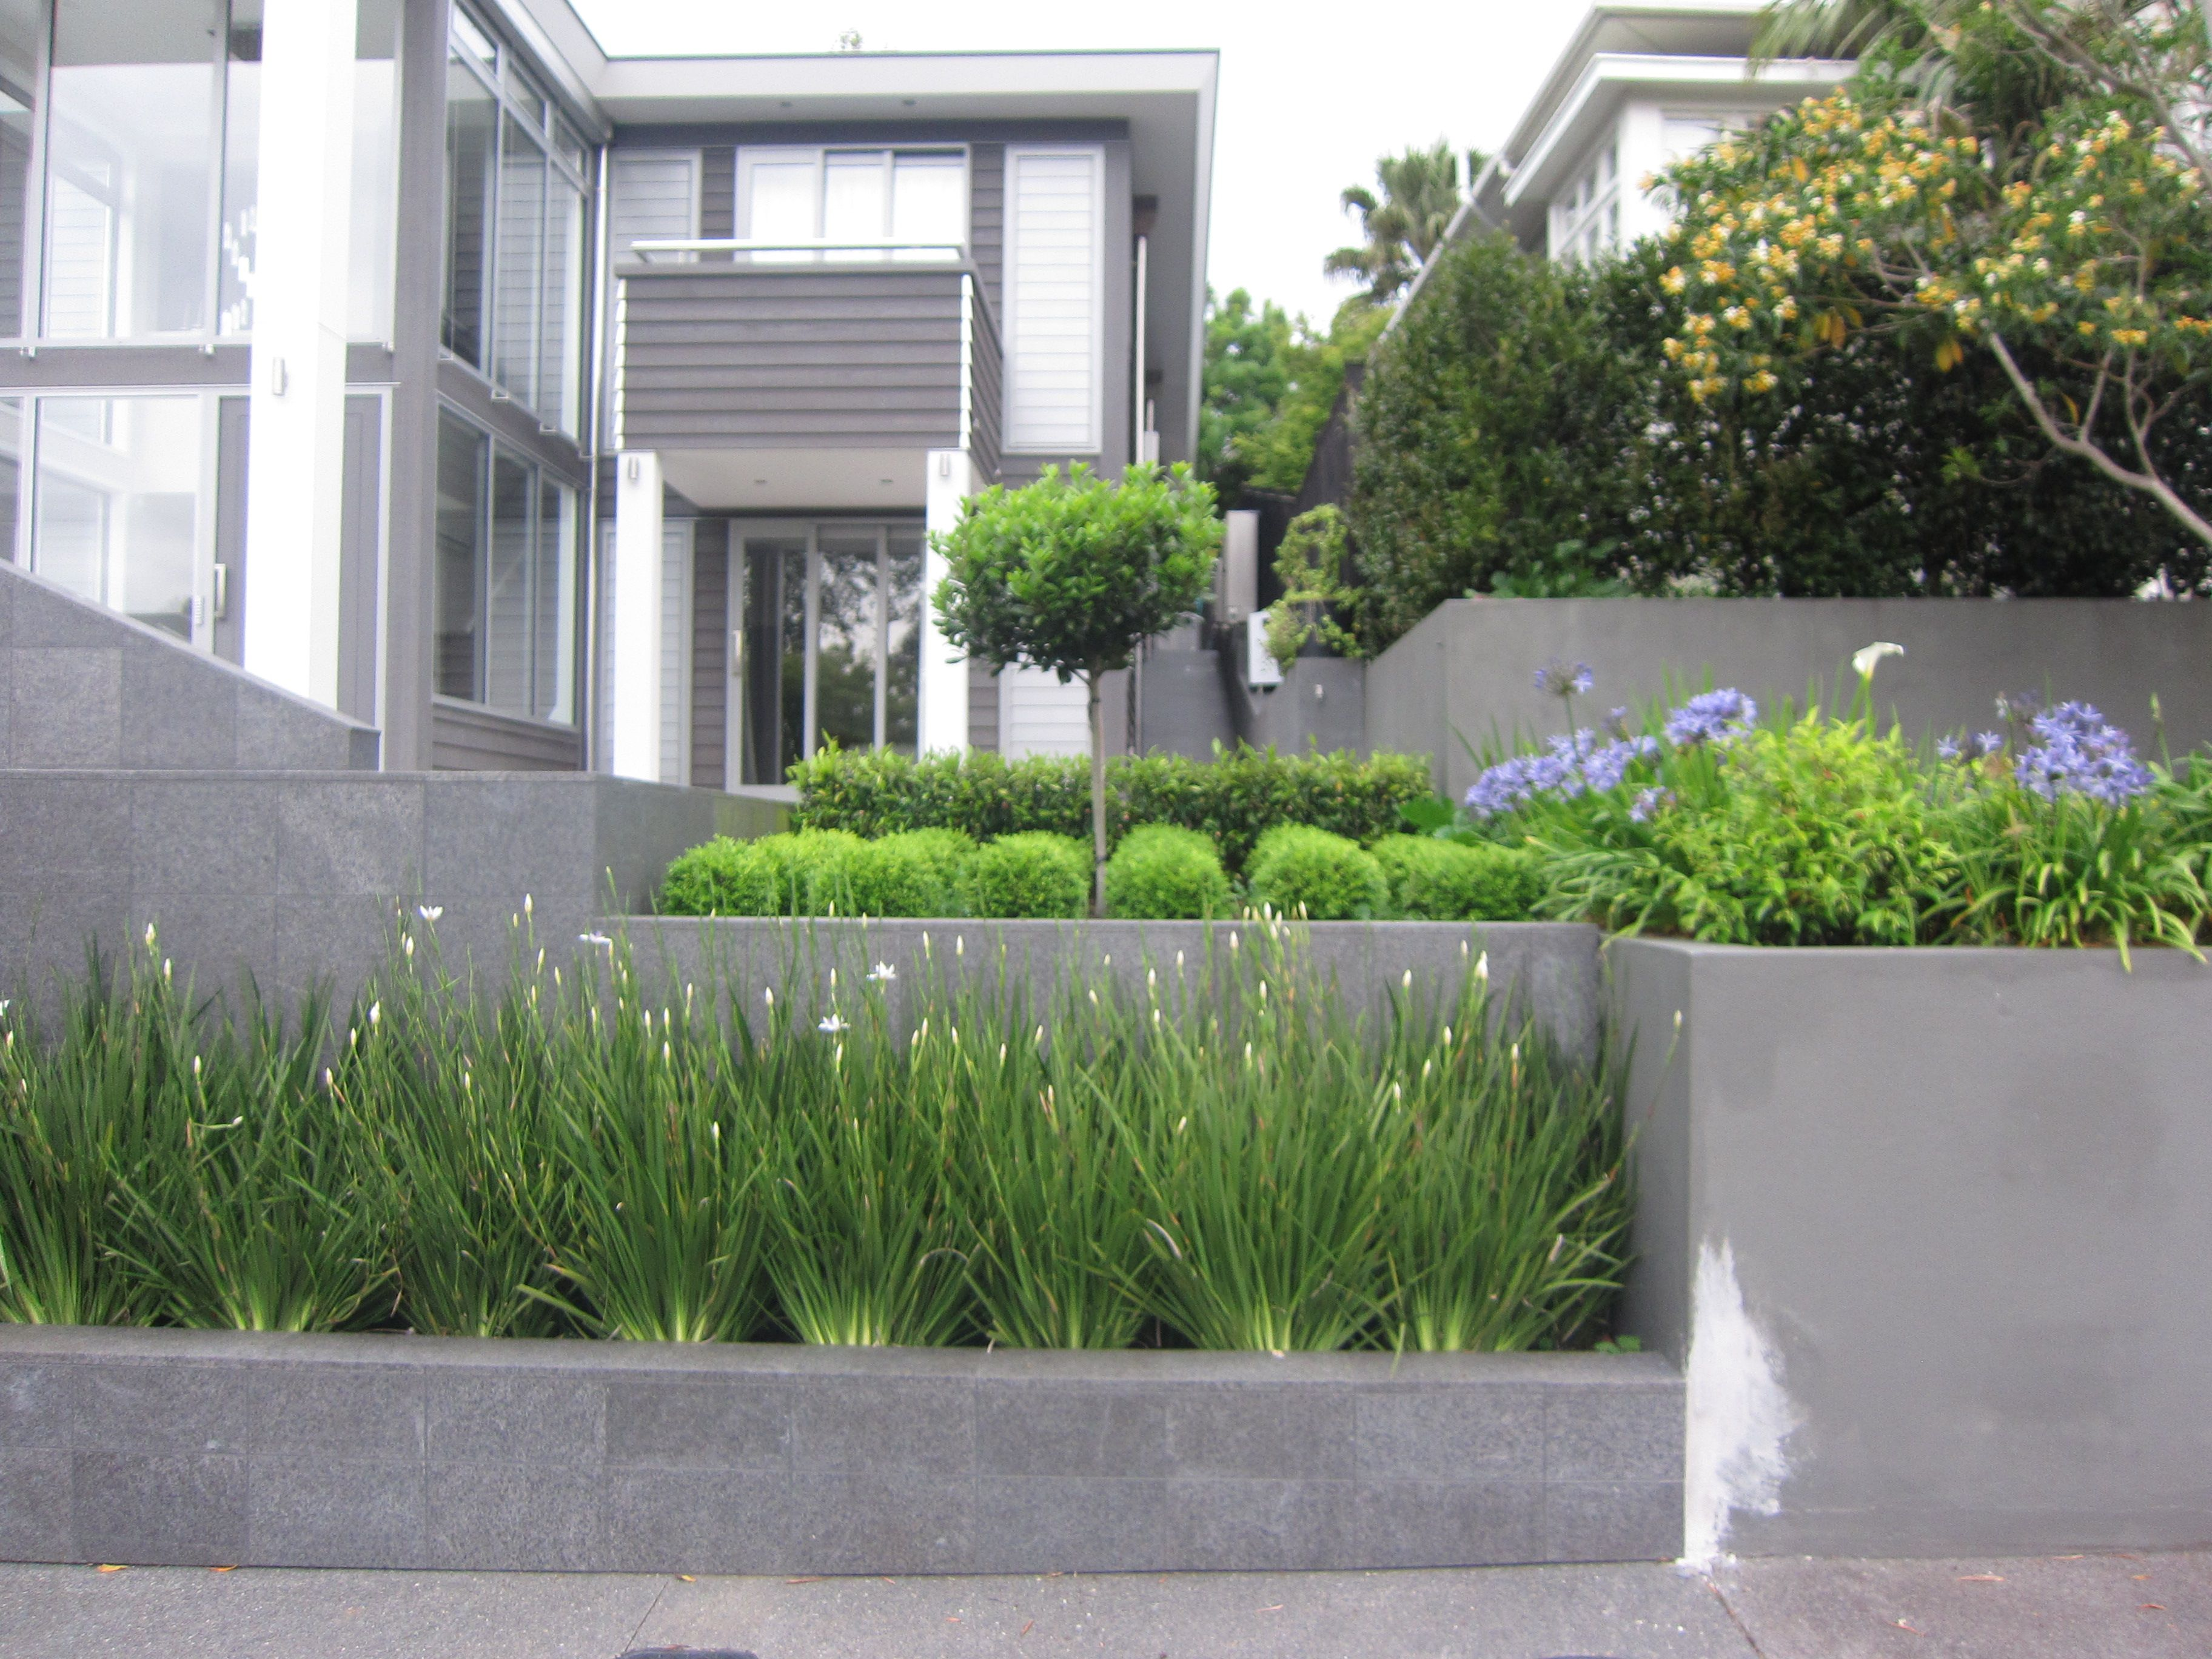 a new house with stylish structured terraced front garden great street appeal